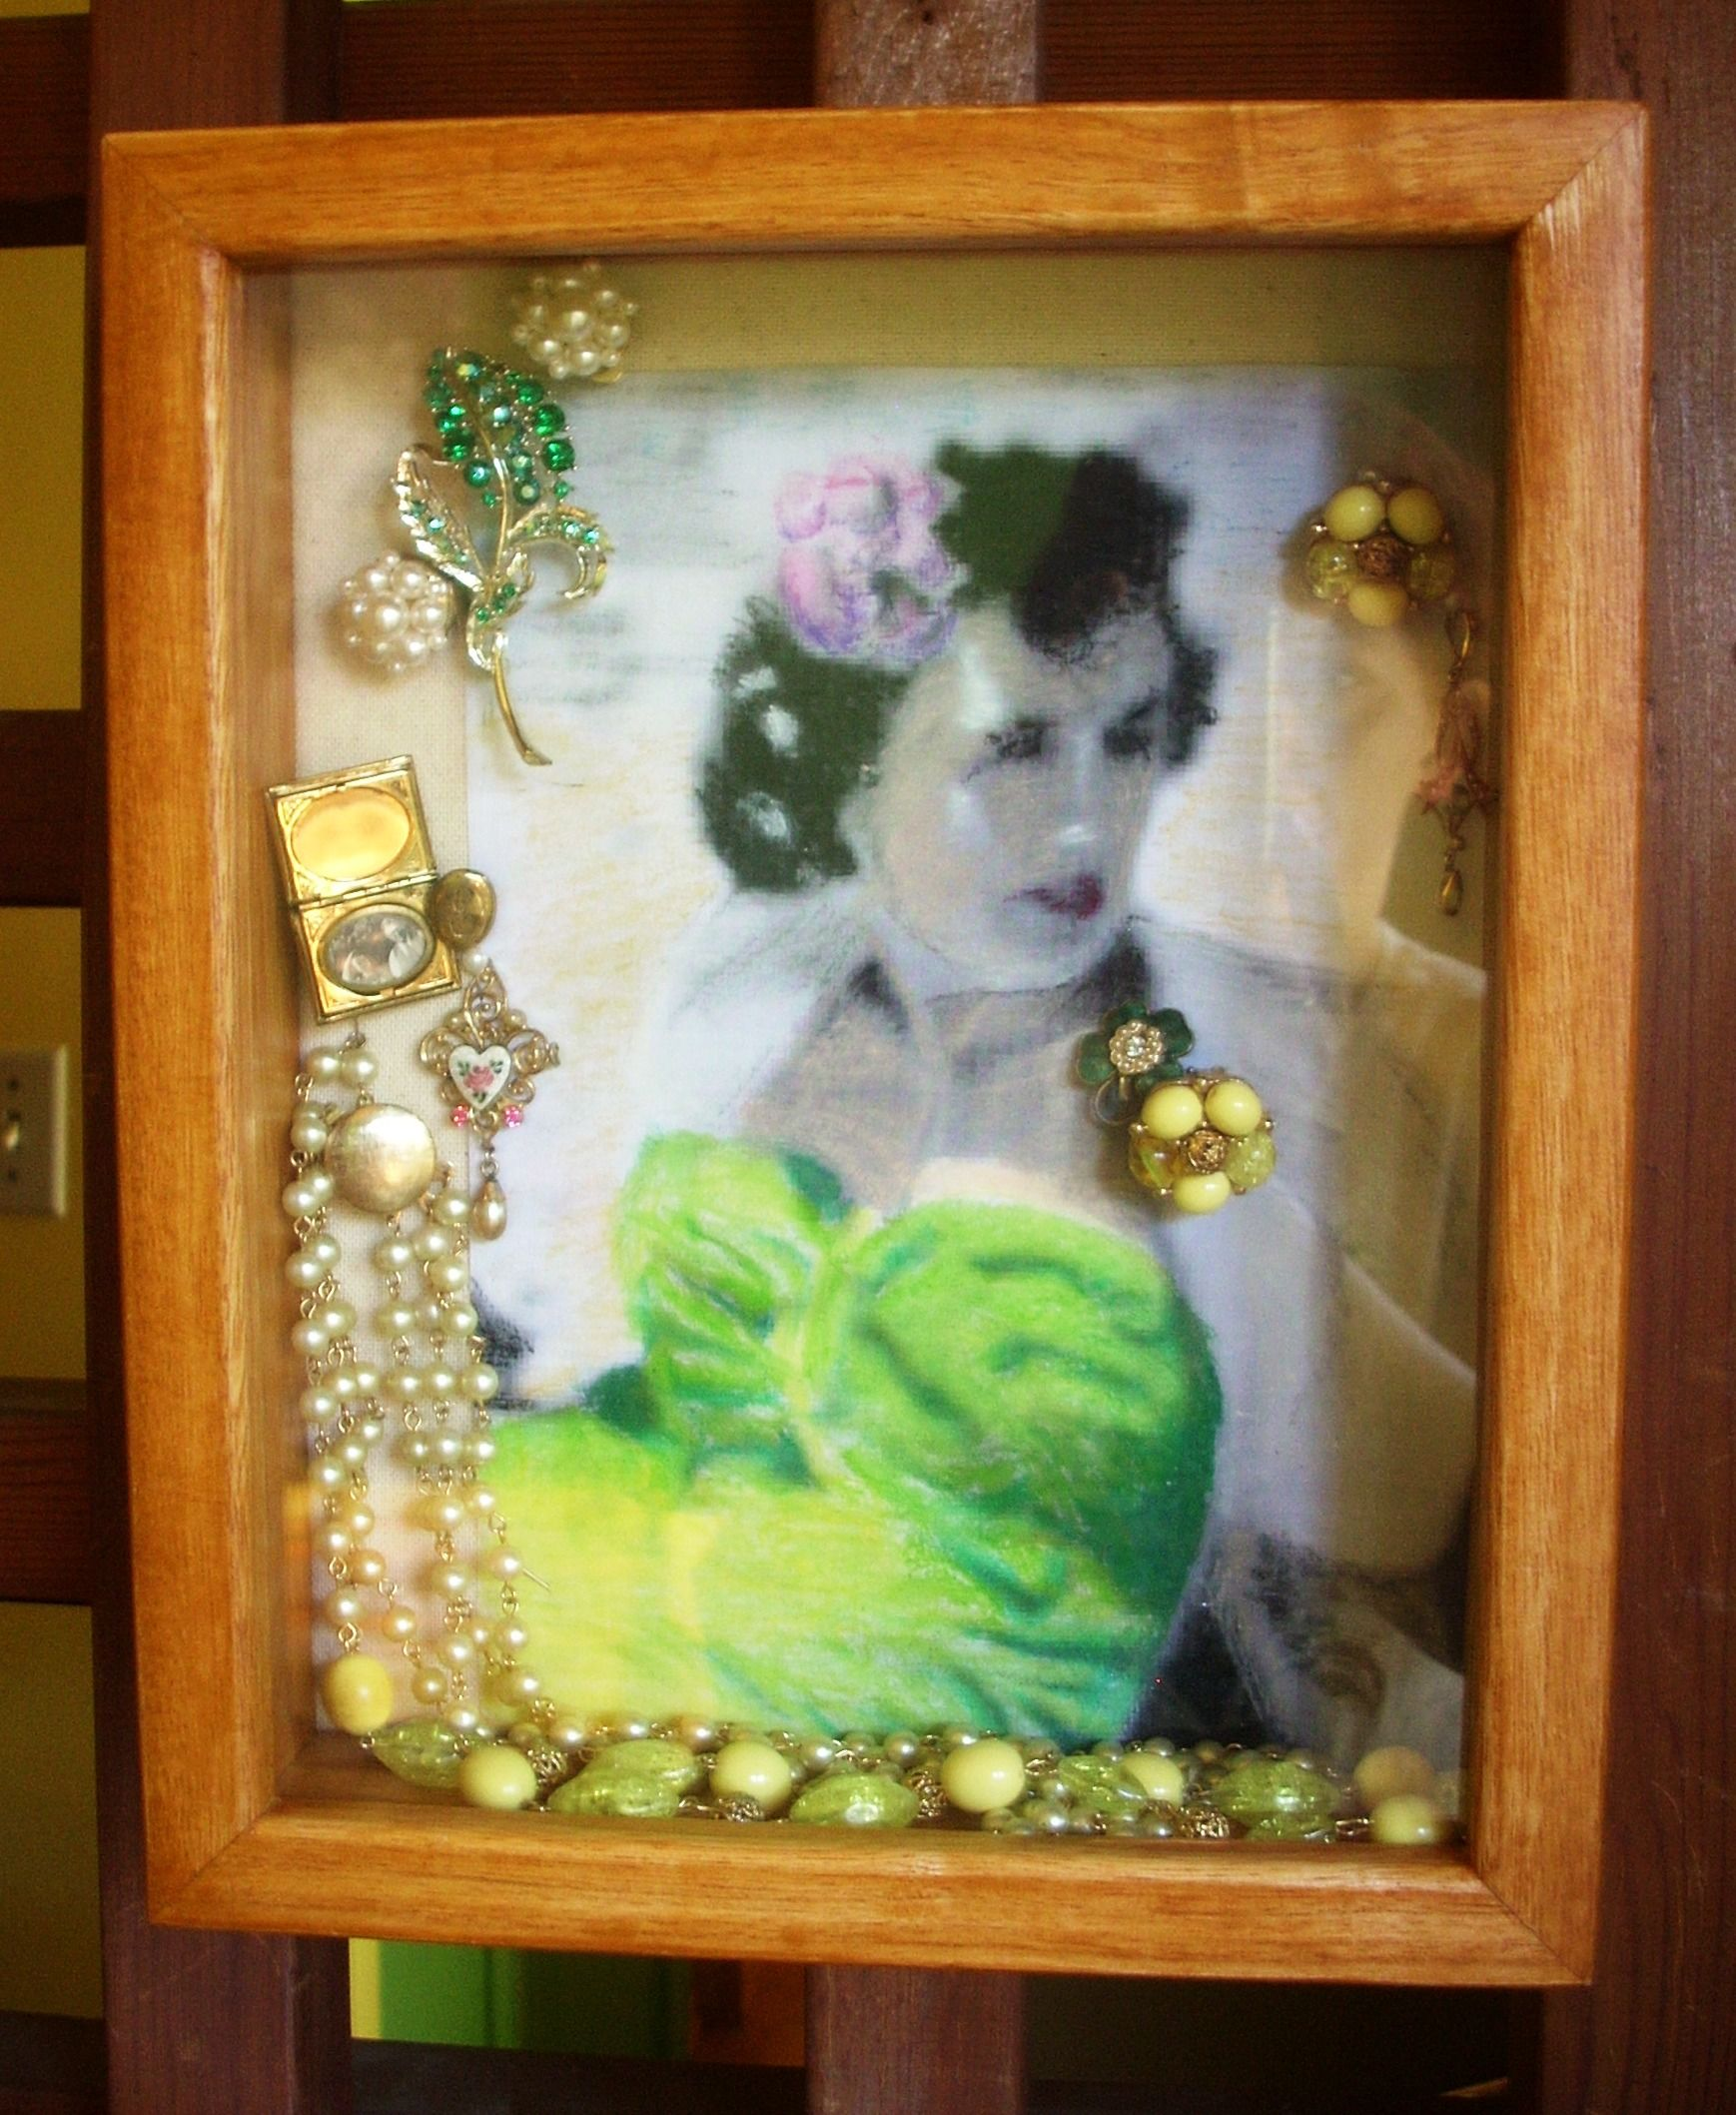 Shadowbox. Small picture of my mother from the 1940s, scanned, printed and hand-coloured with pastels. Added some of her jewelry.